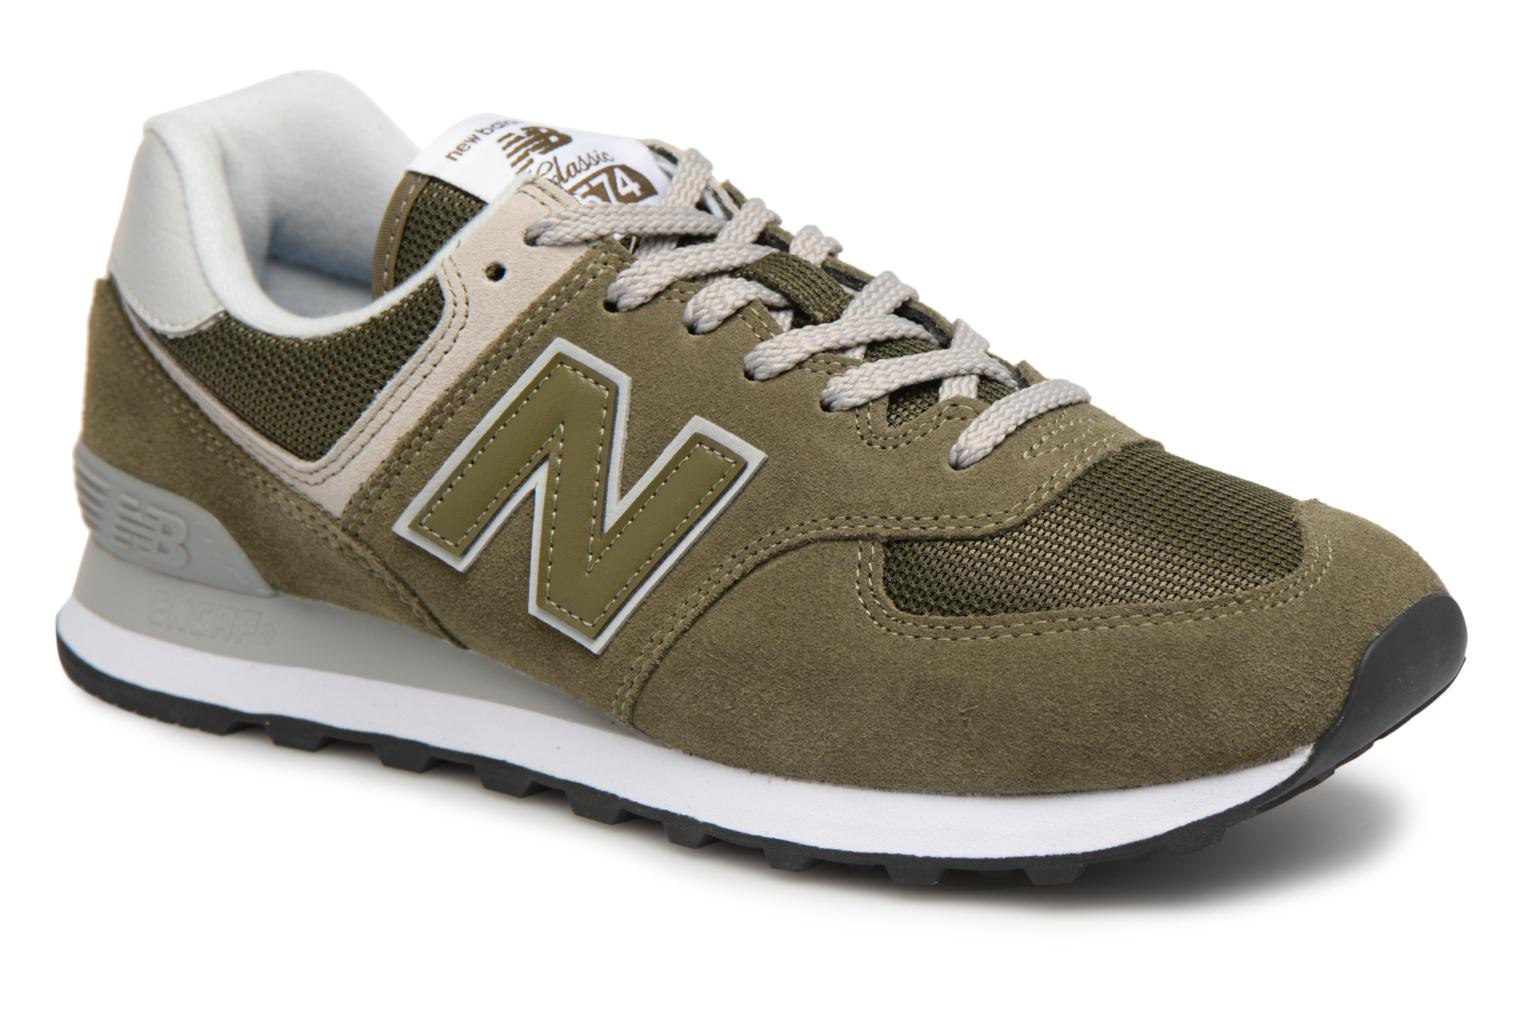 new balance 574 grün · Sneakerkompass